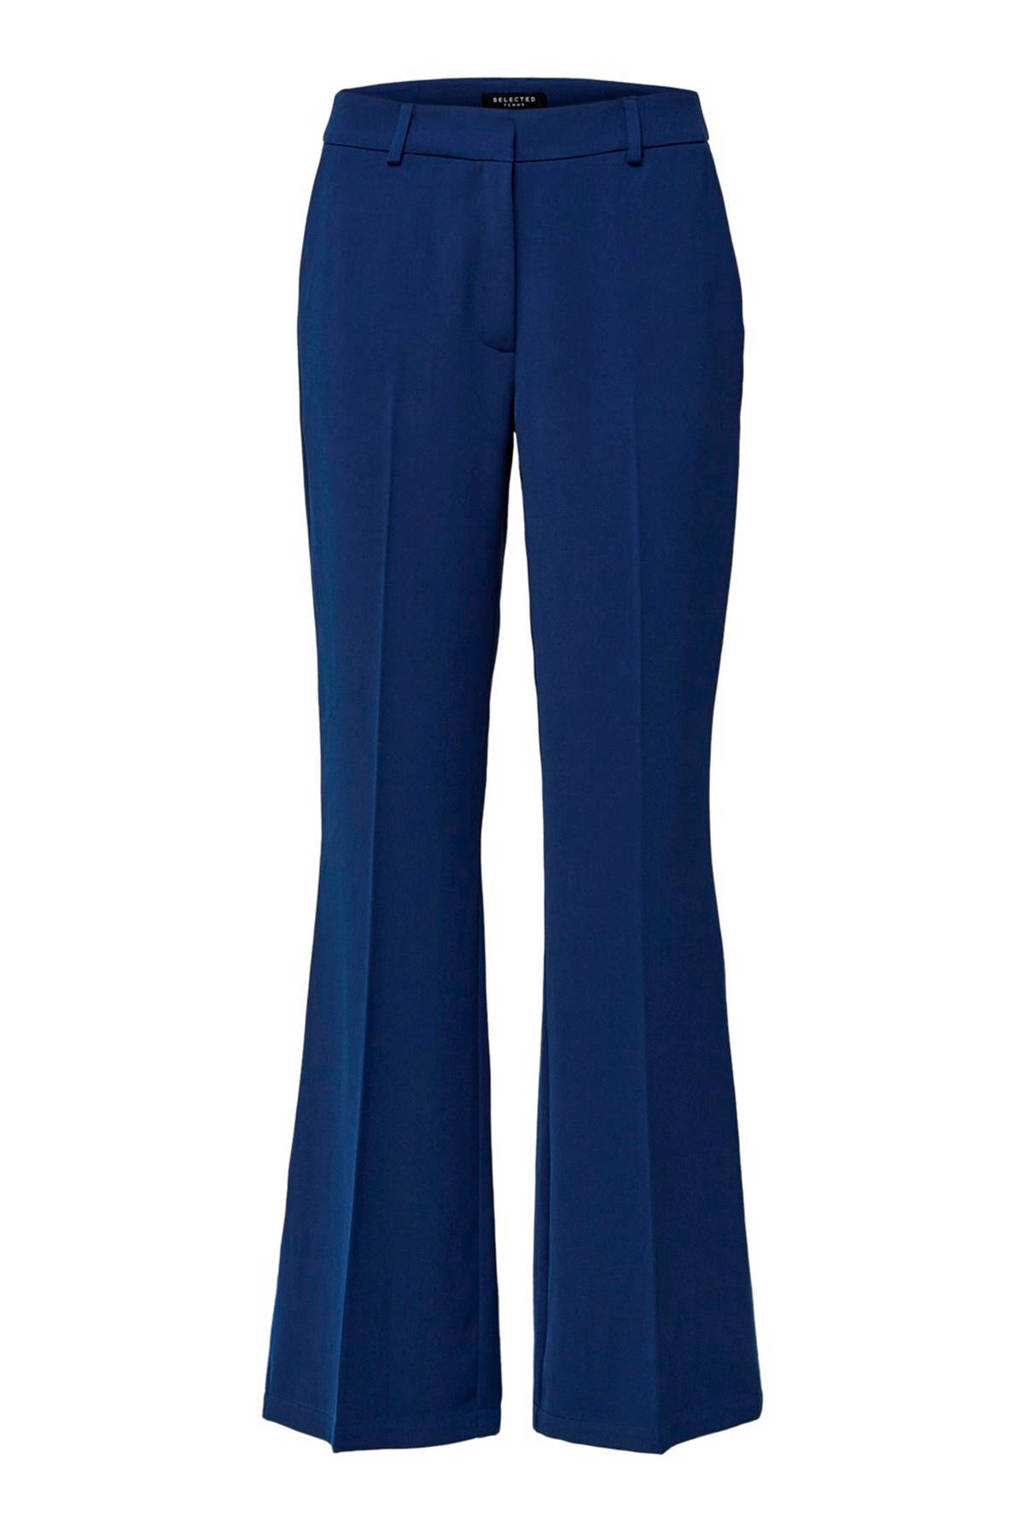 SELECTED FEMME high waist flared pantalon blauw, Blauw